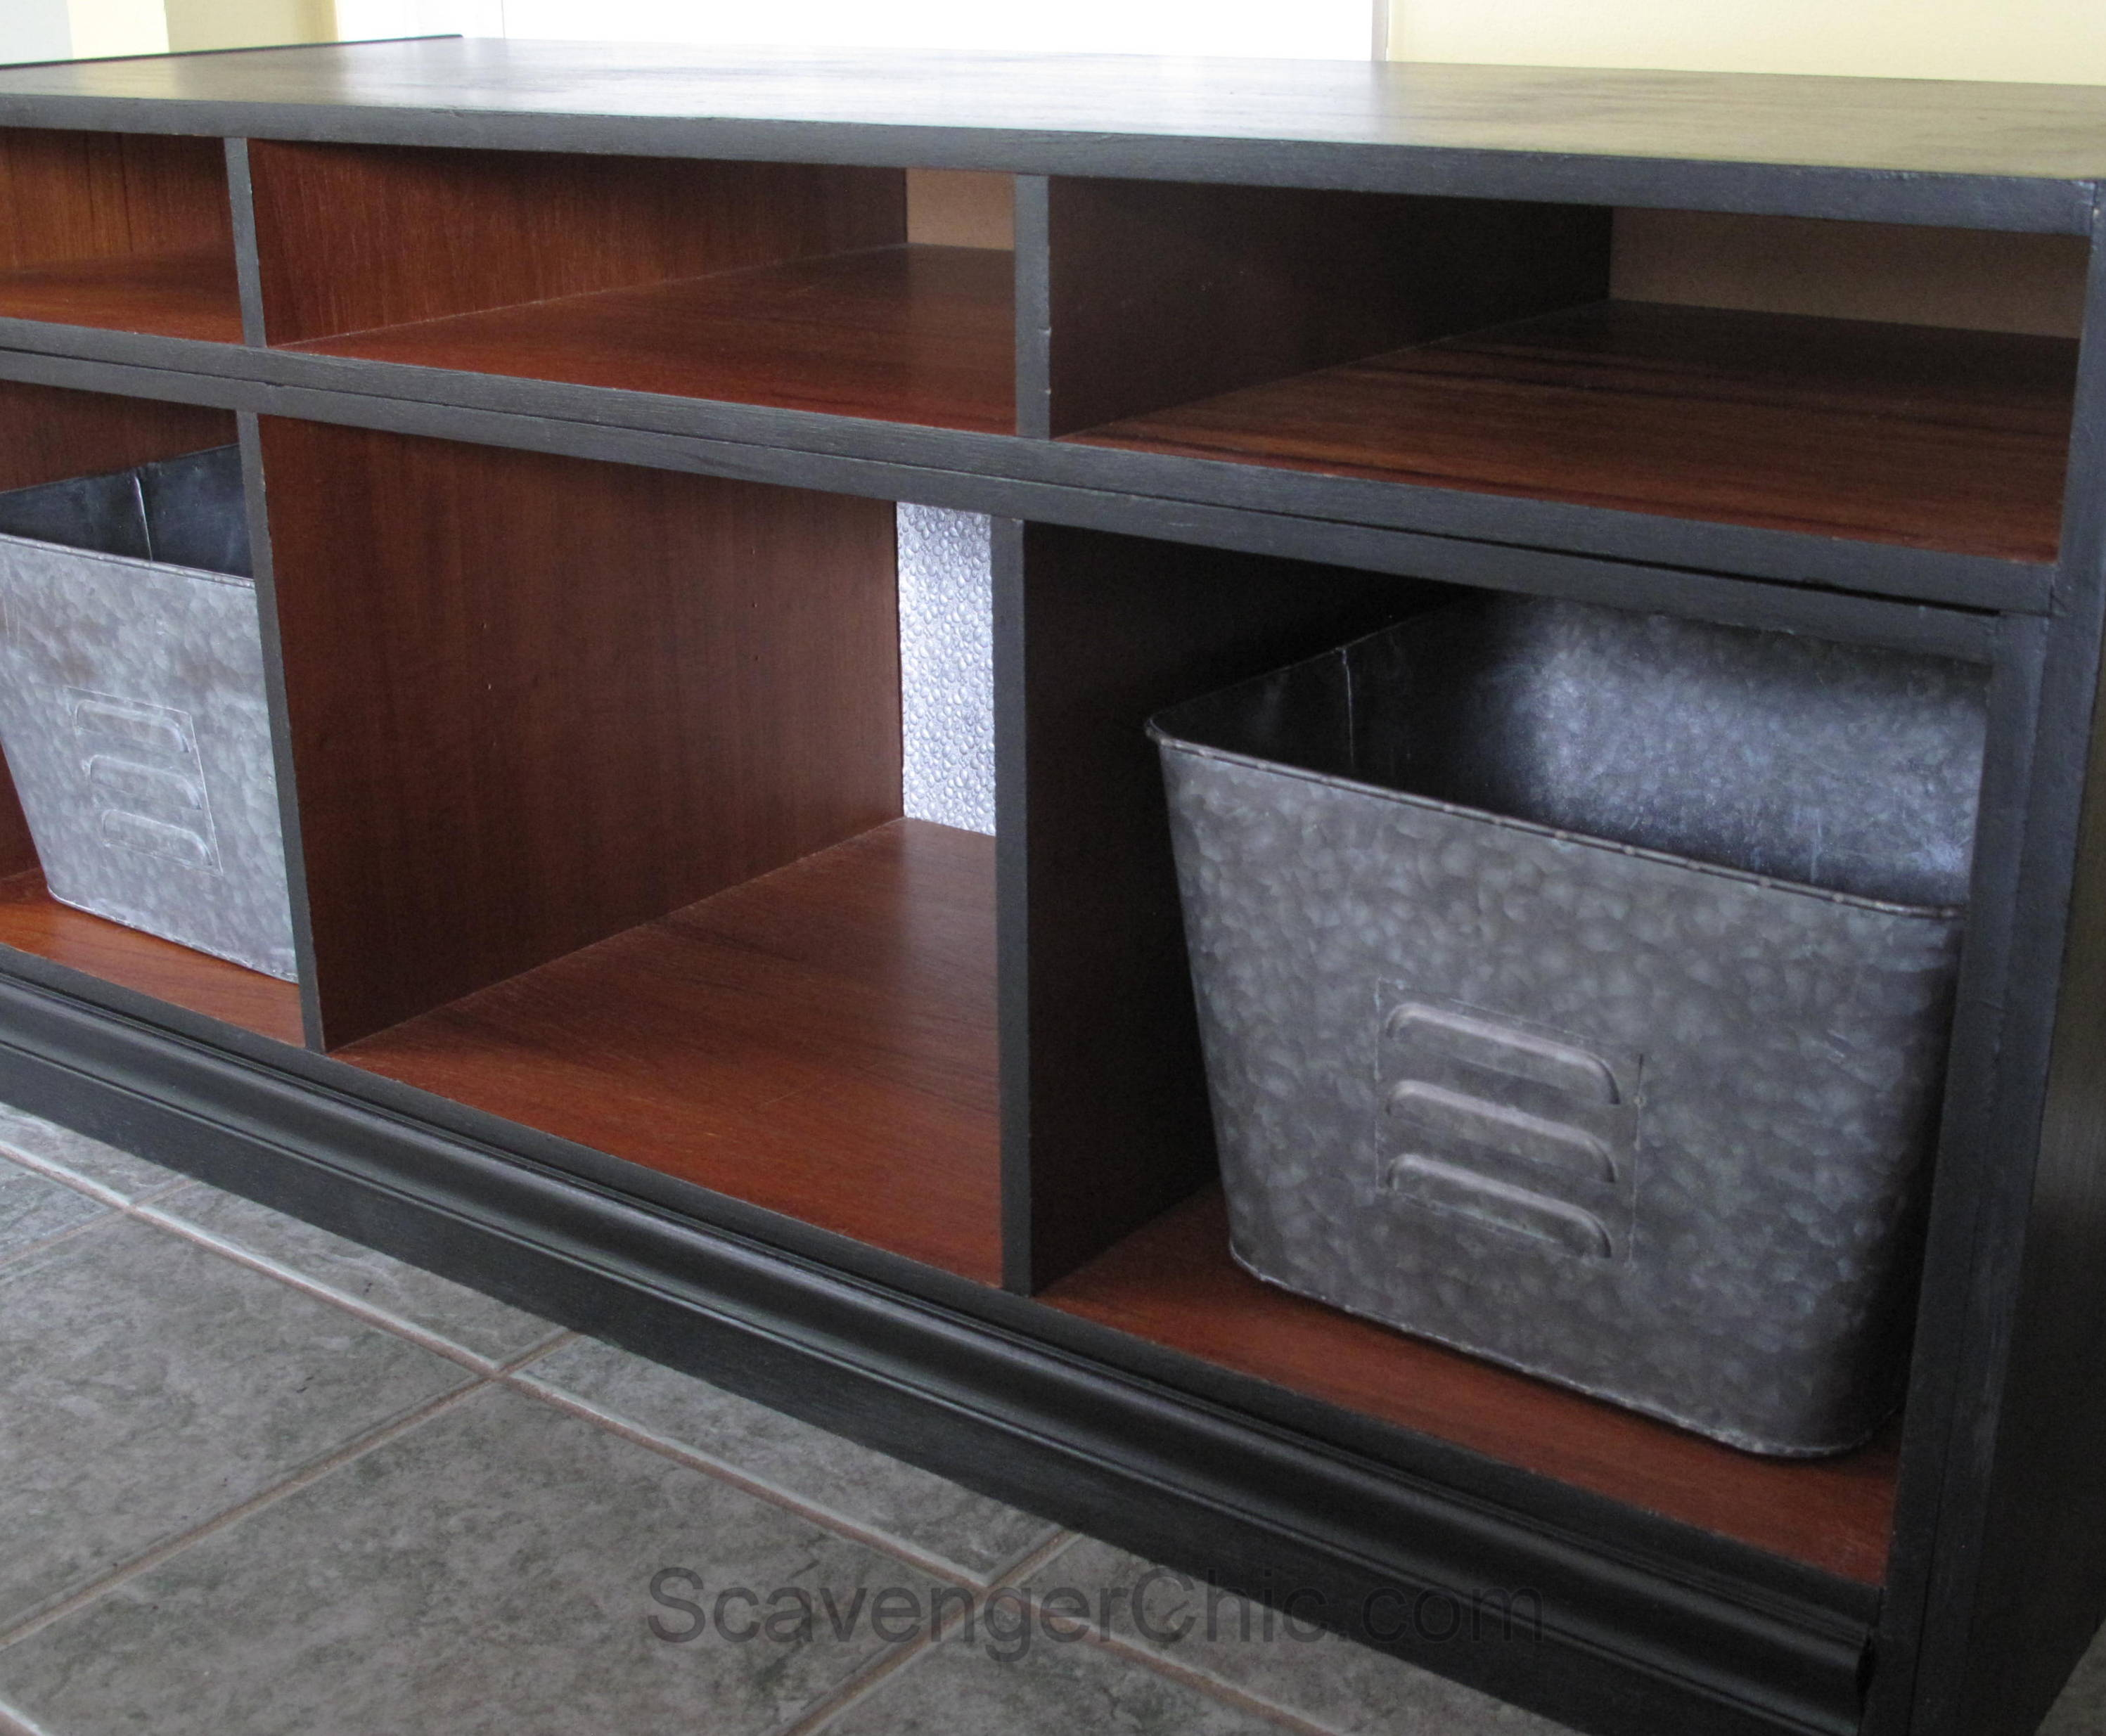 New Life for a TV Stand – Scavenger Chic